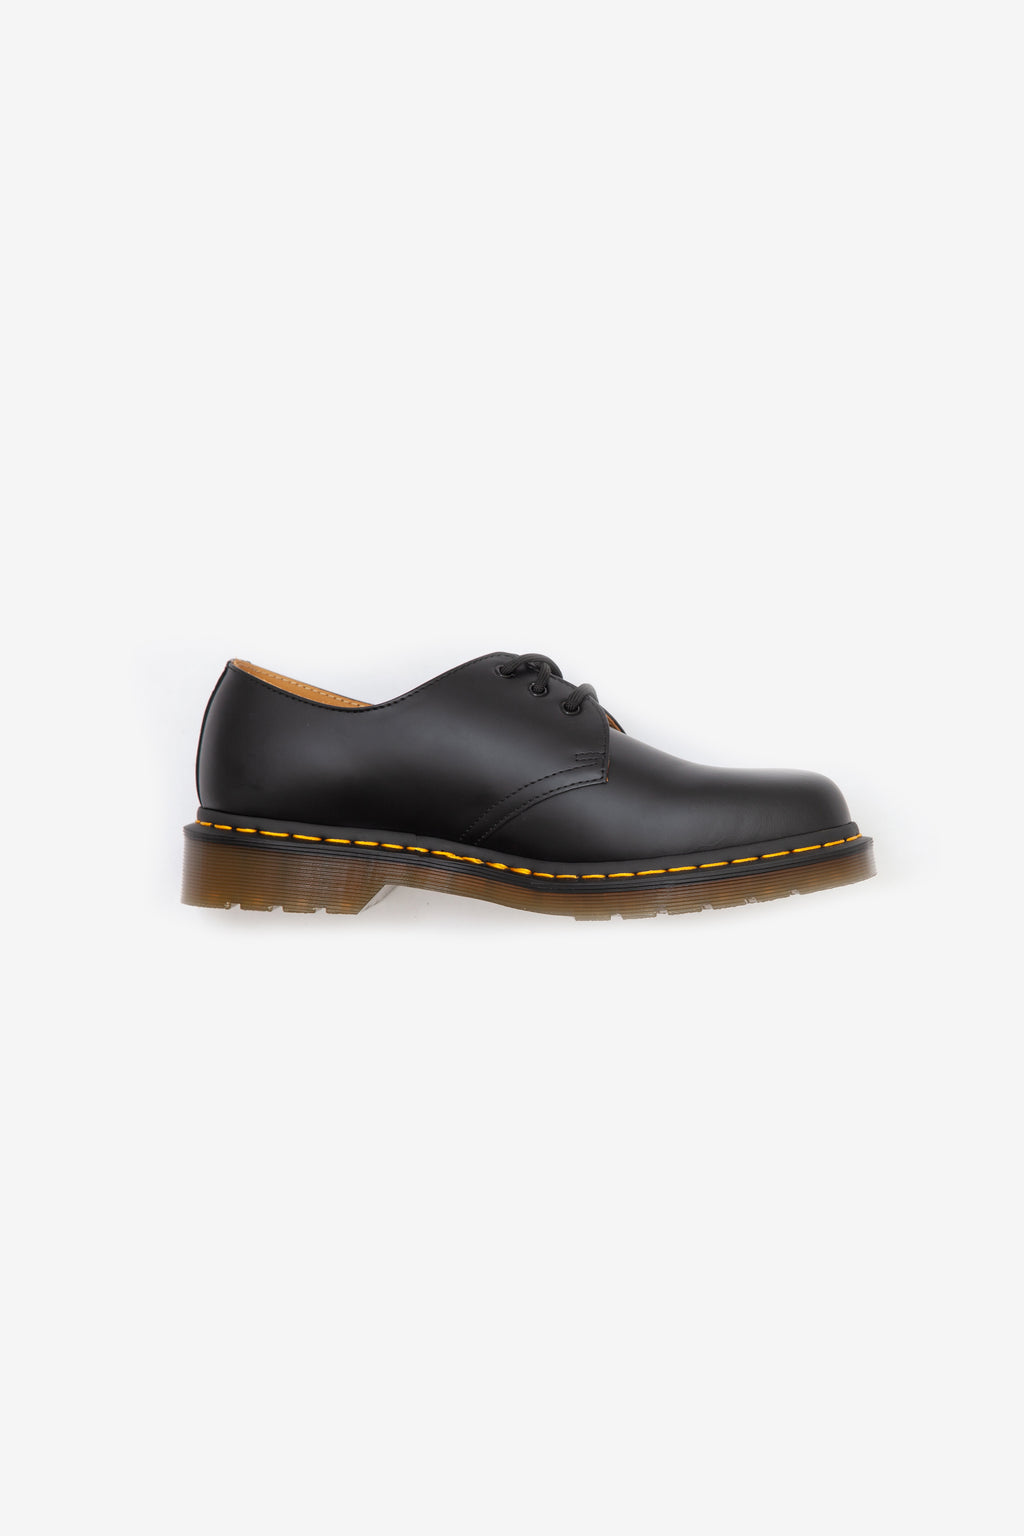 Dr Martens Mens 1461 Smooth Black